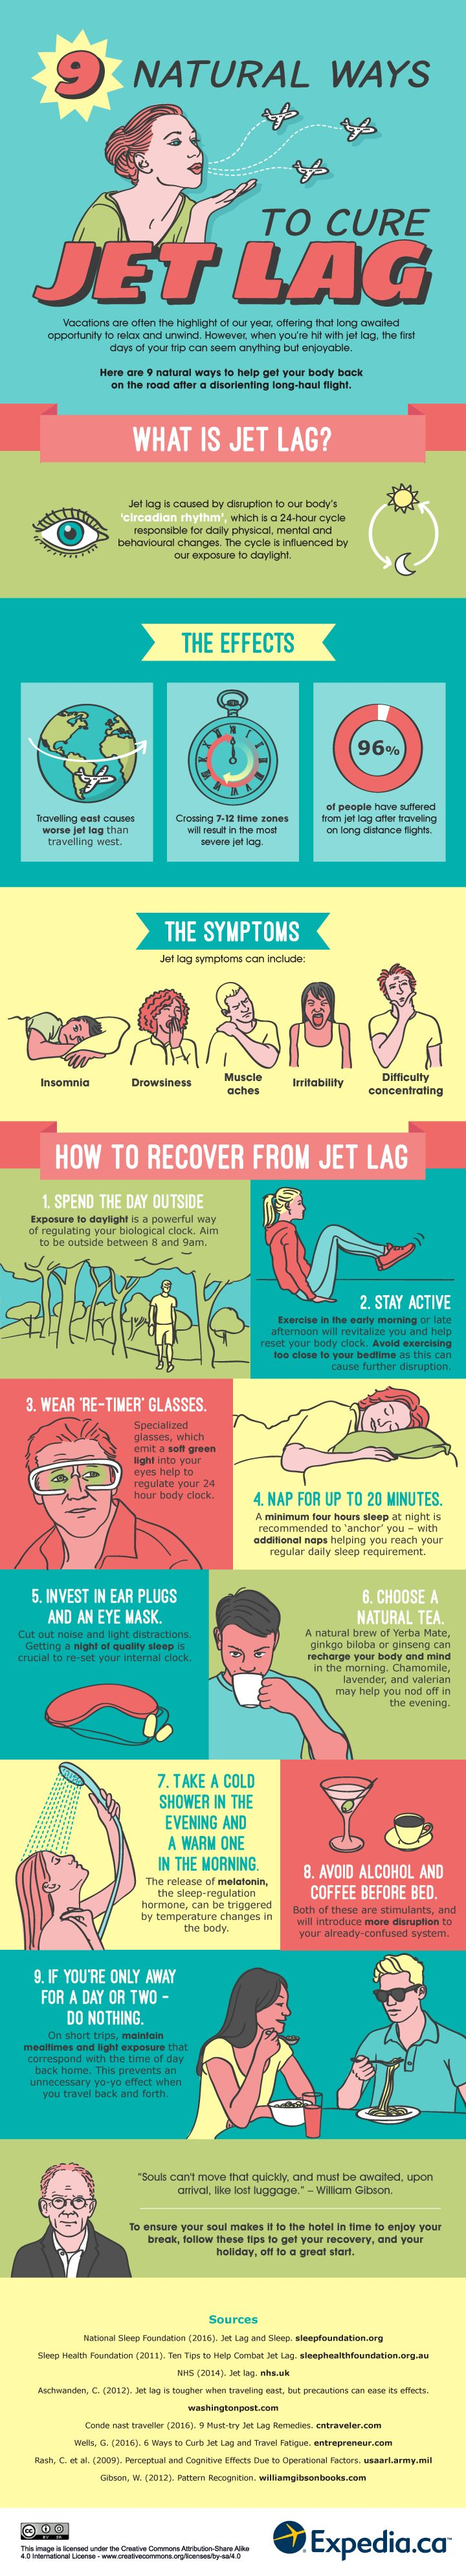 Nine natural ways to cure jet lag